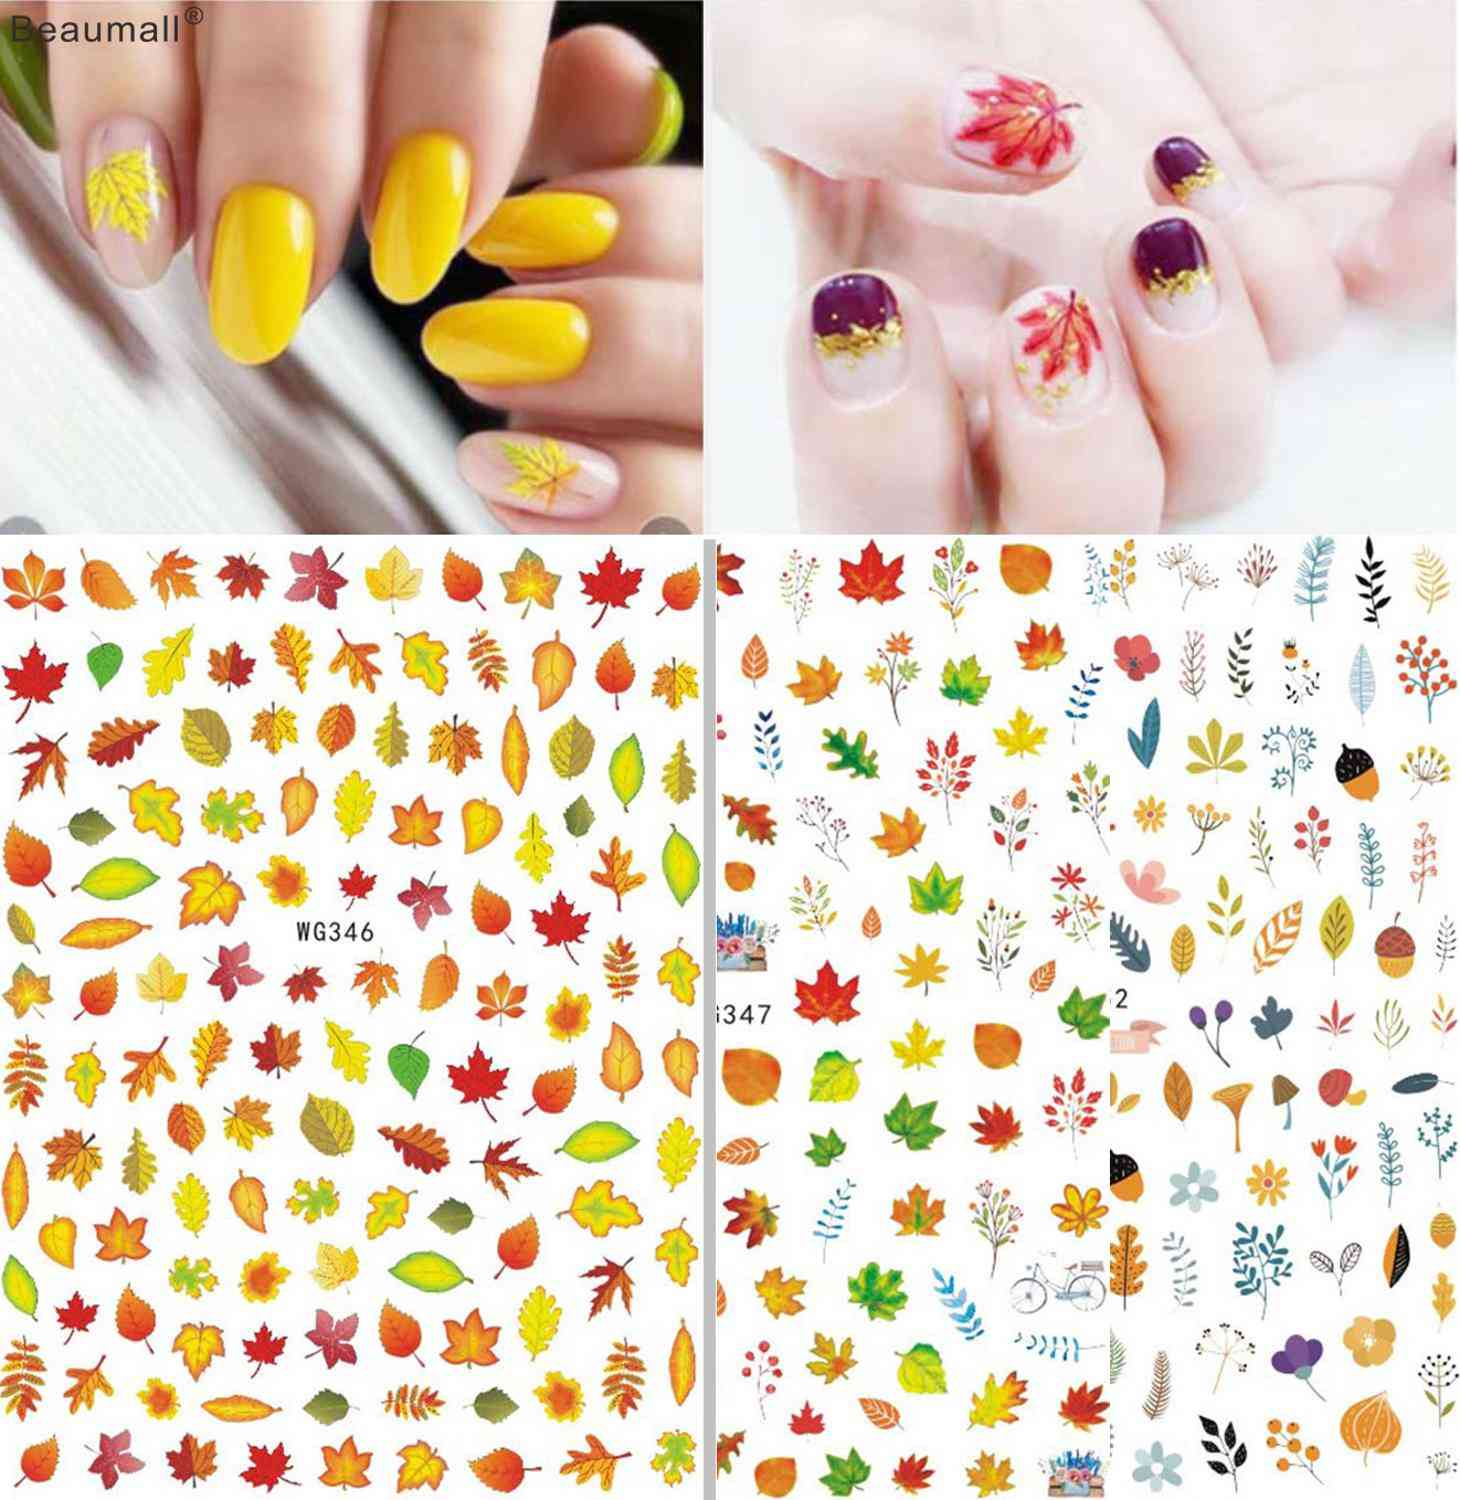 Maples Autumn Nails Art Manicure Back Glue Decal Decorations Sticker For Beauty